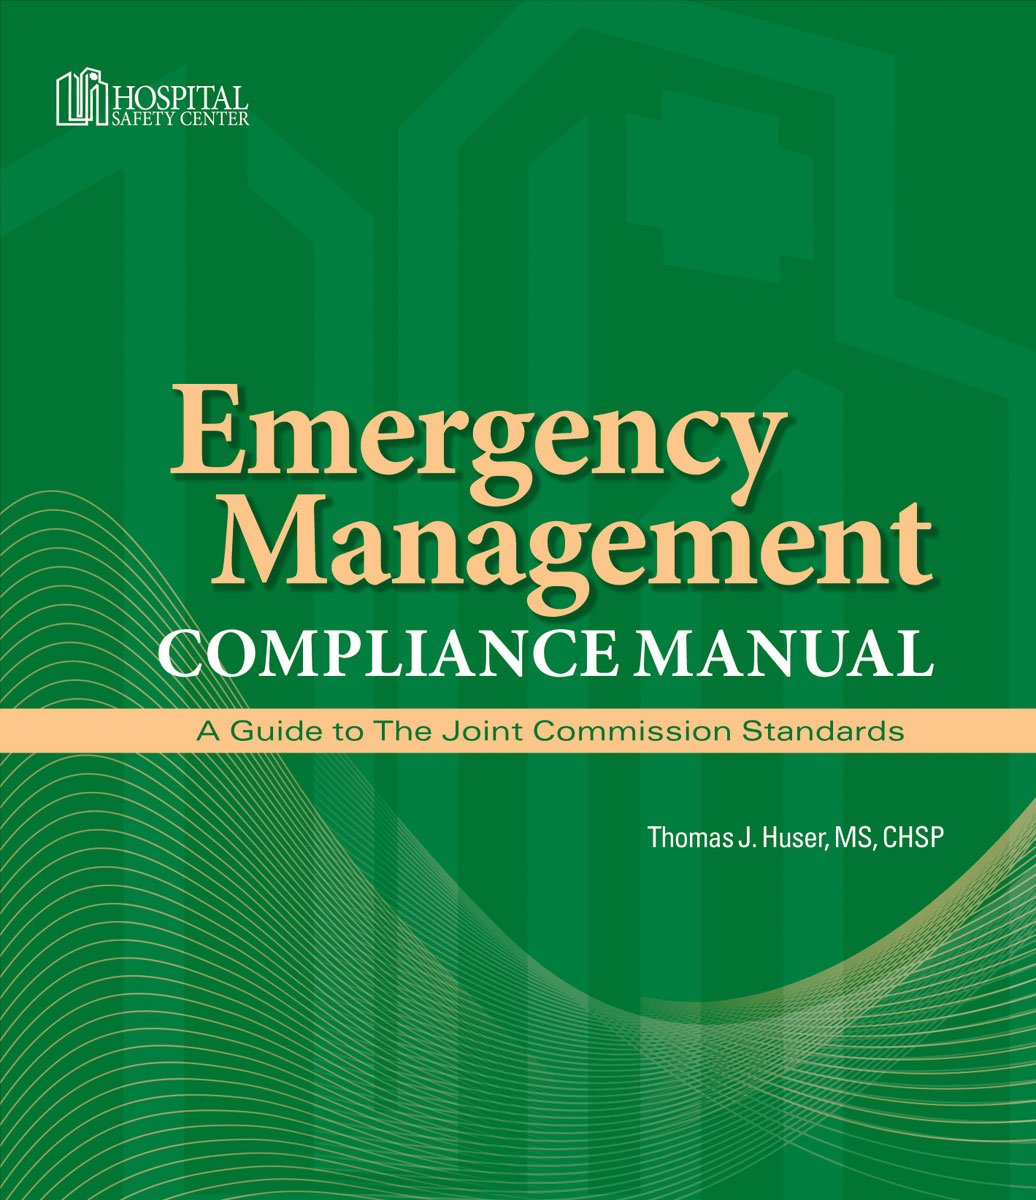 Emergency Management Compliance Manual: A Guide to The Joint Commission Standards PDF